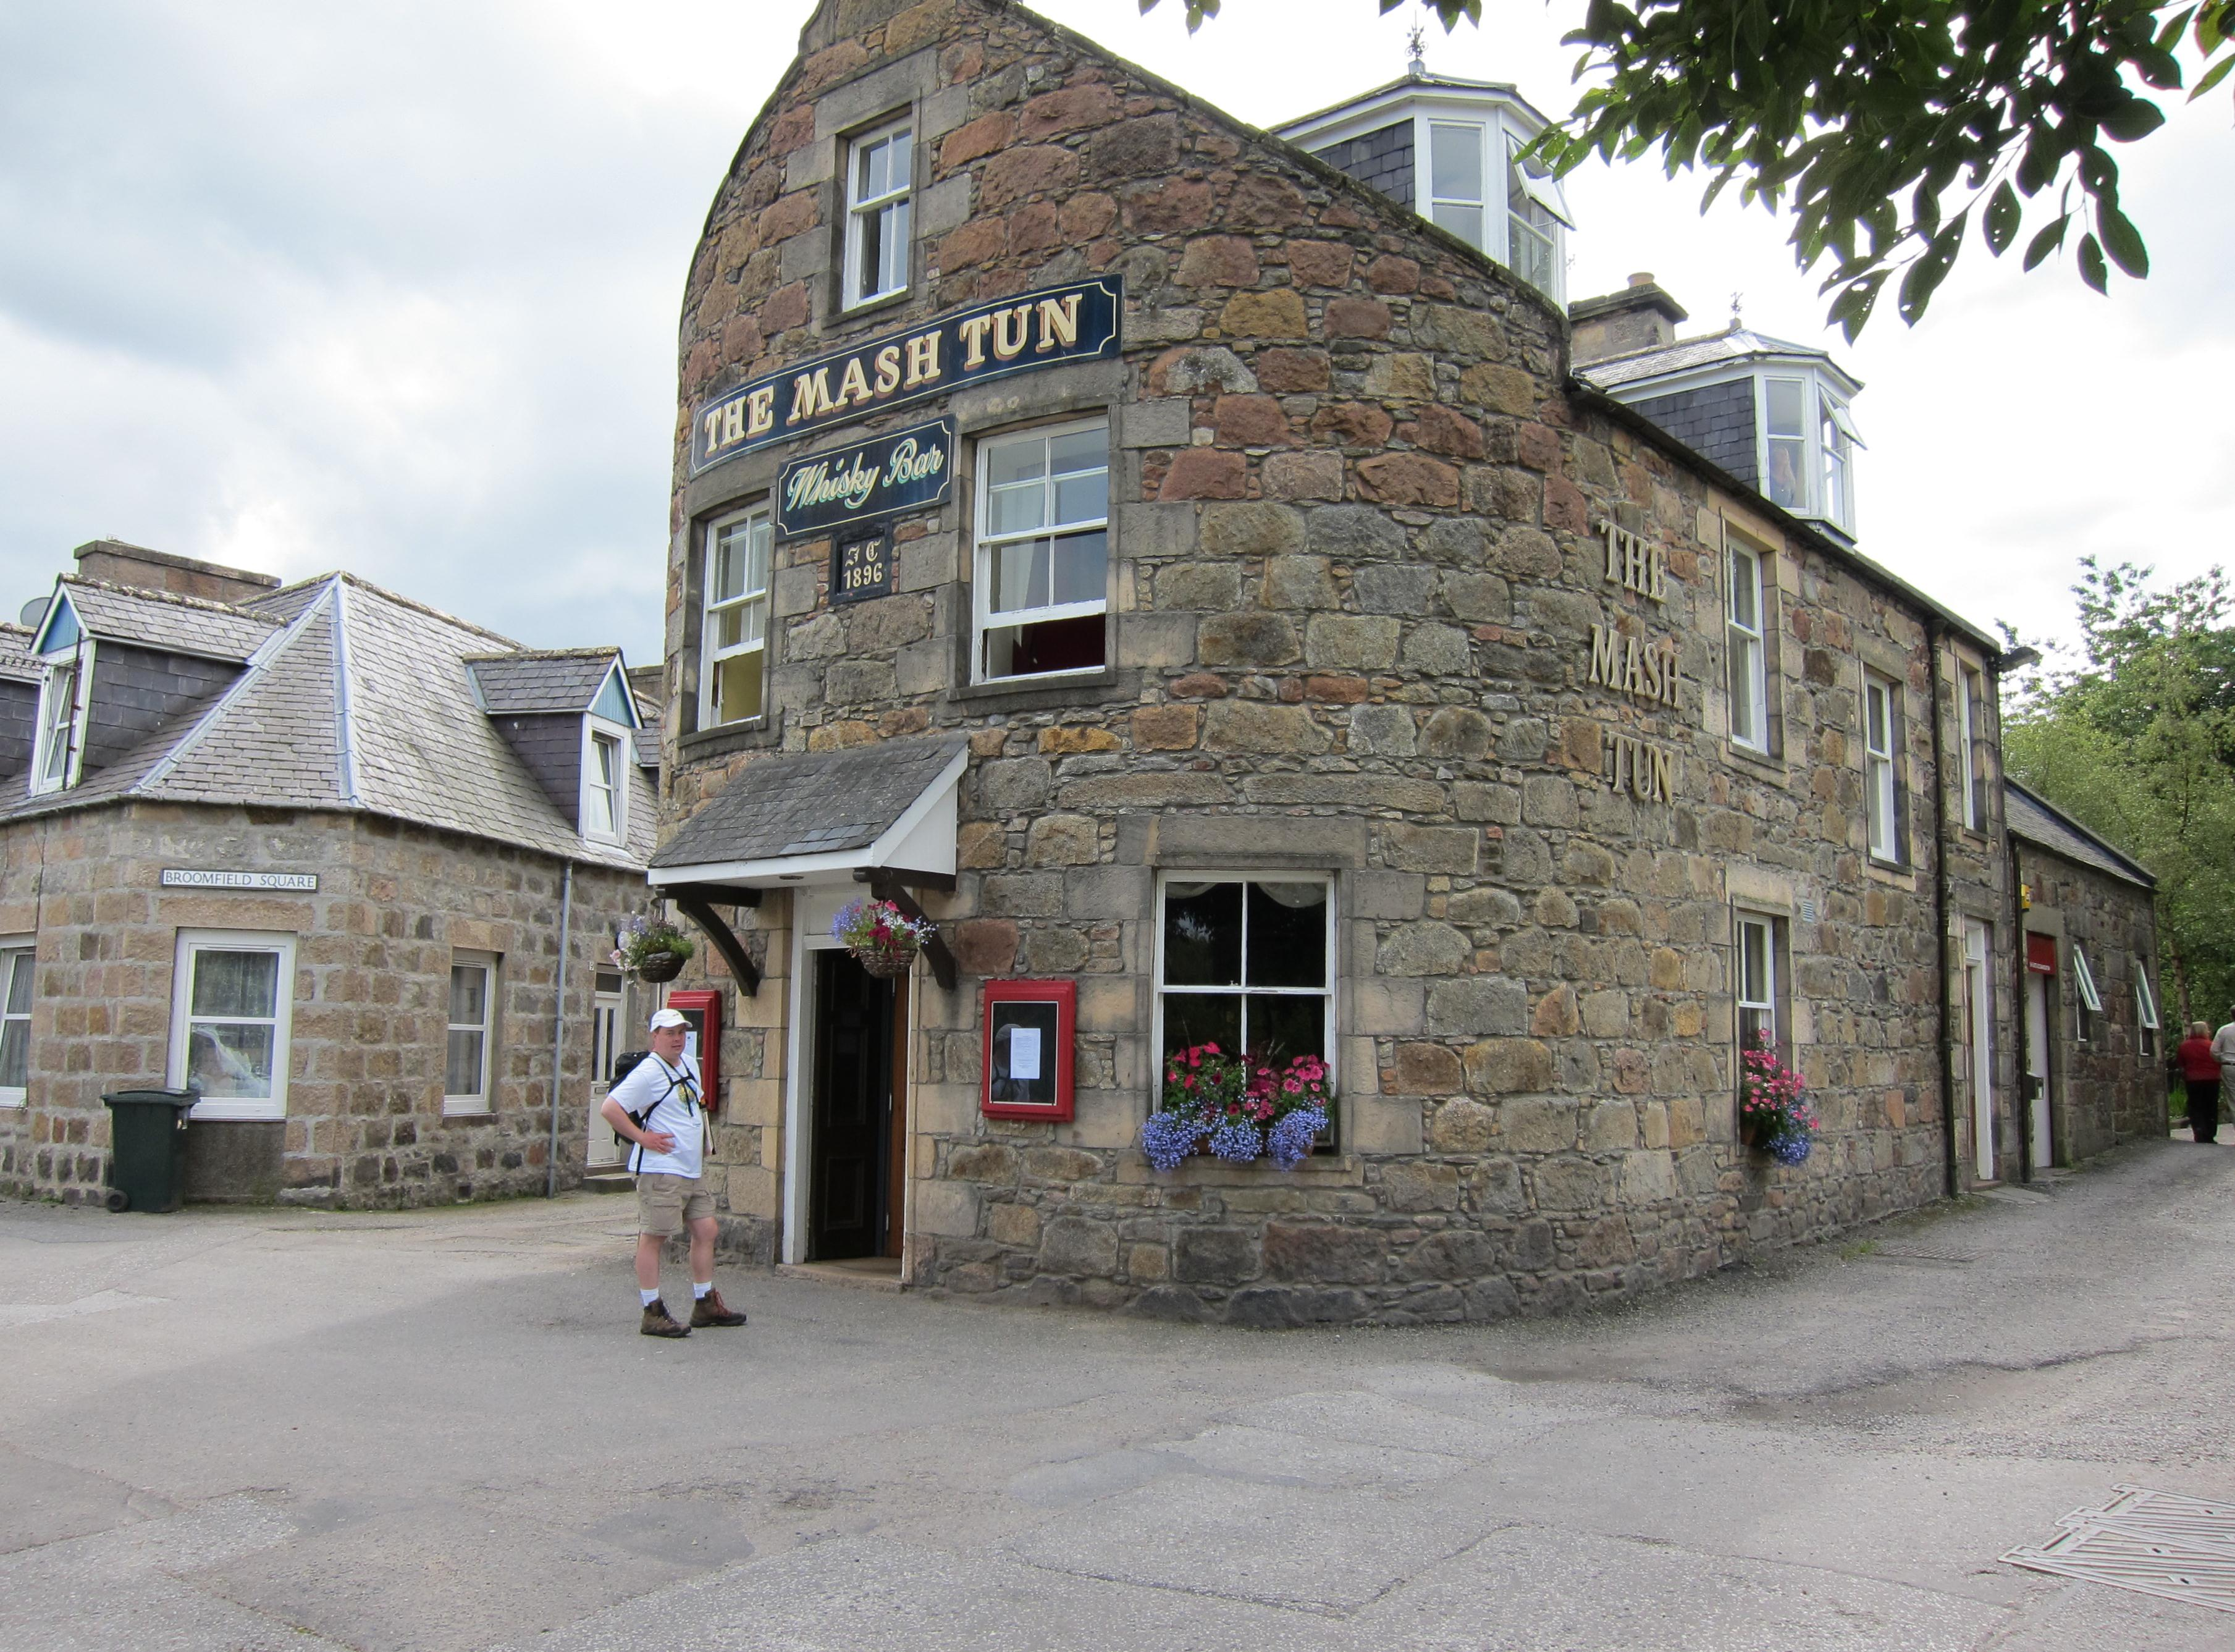 Gavan gets ready for his first dram at The Mash Tun in Abelour